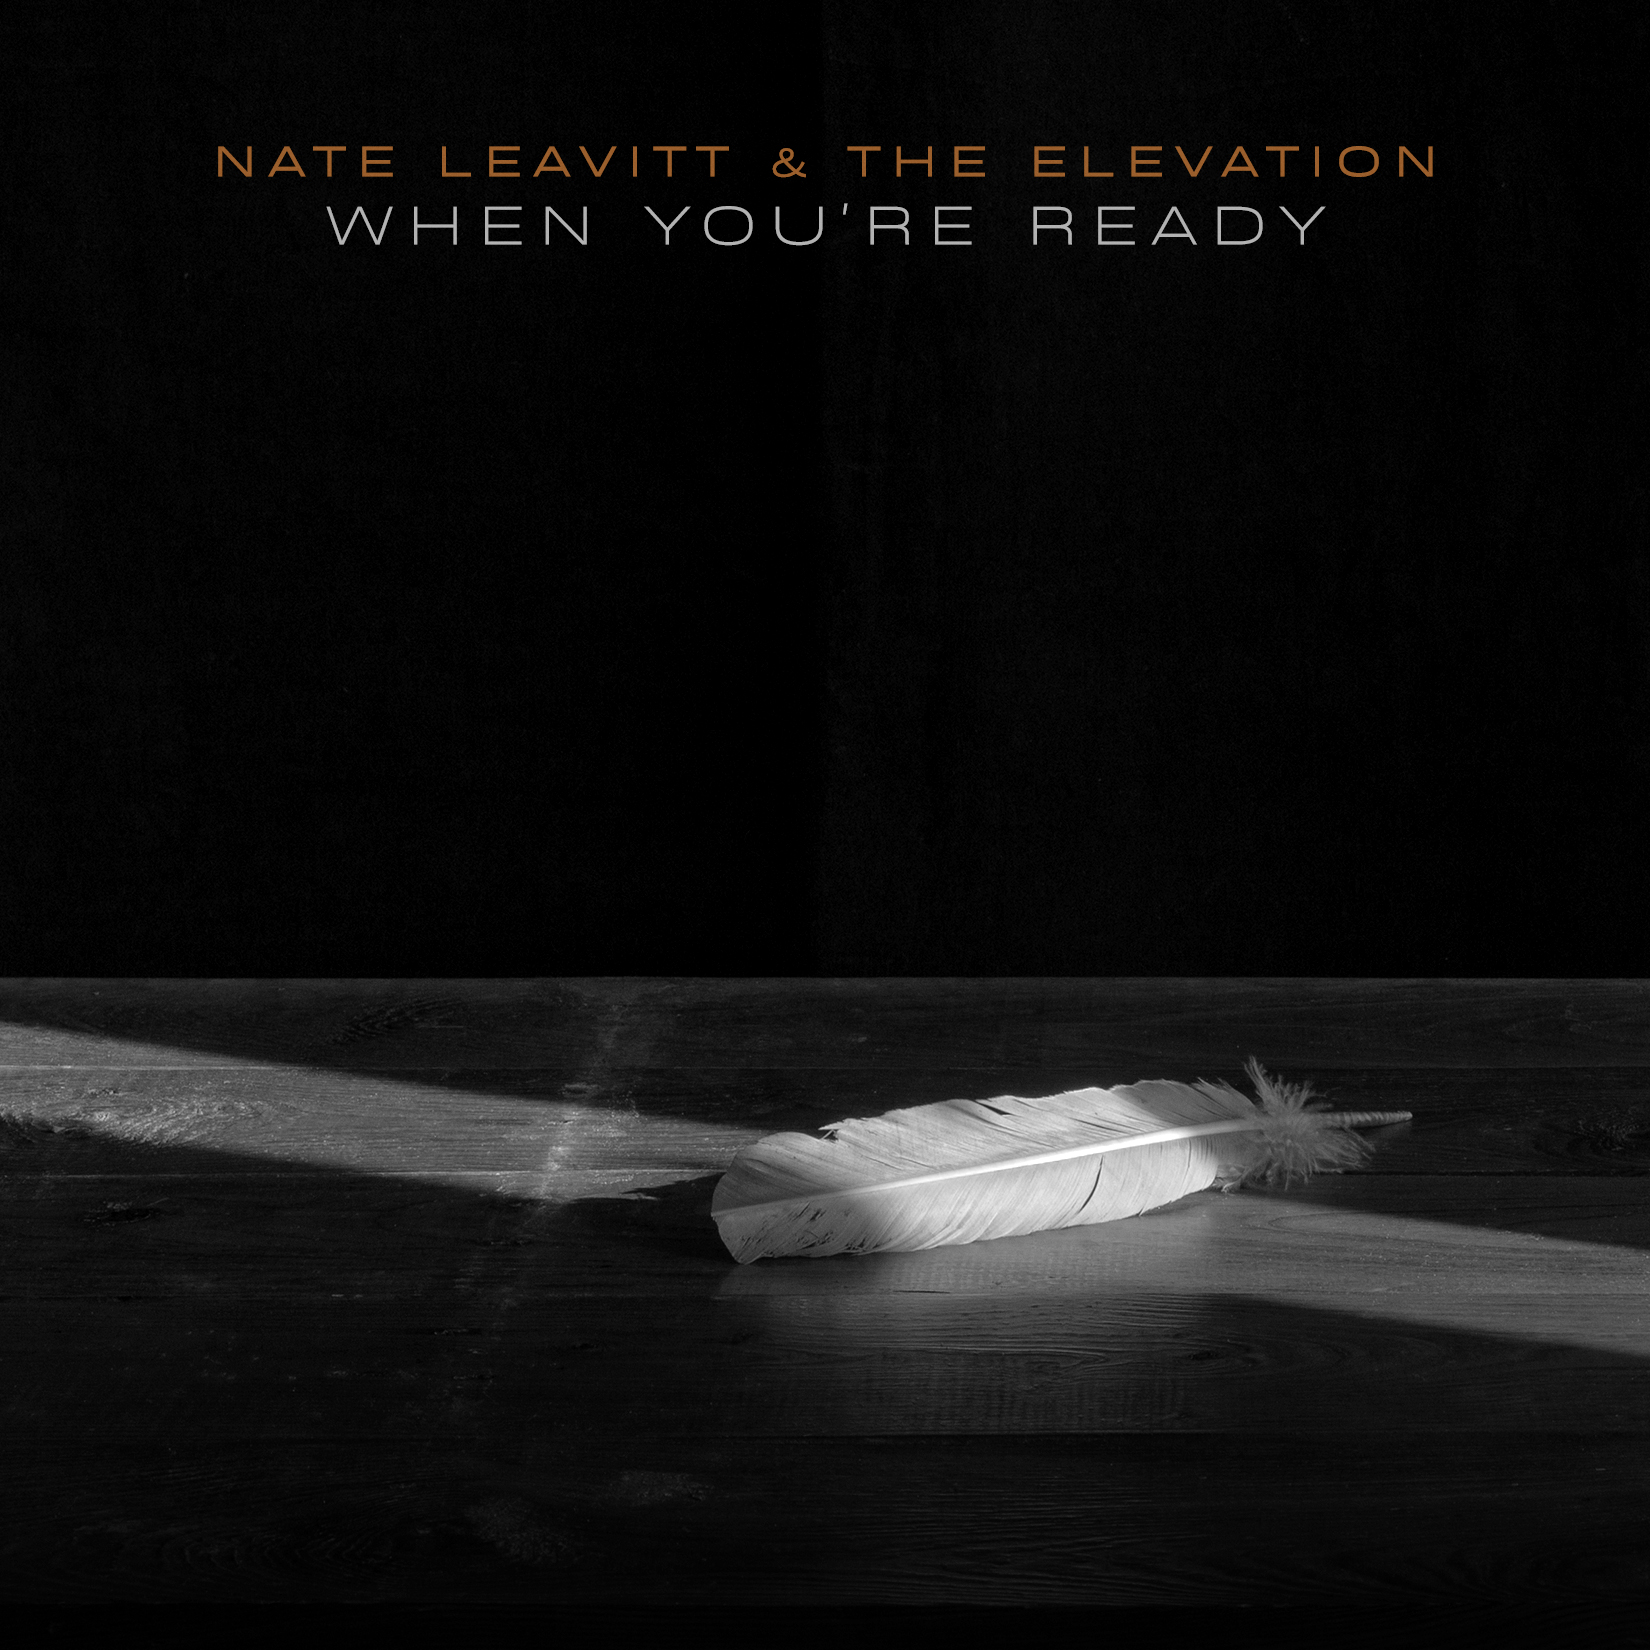 Nate Leavitt & The Elevation